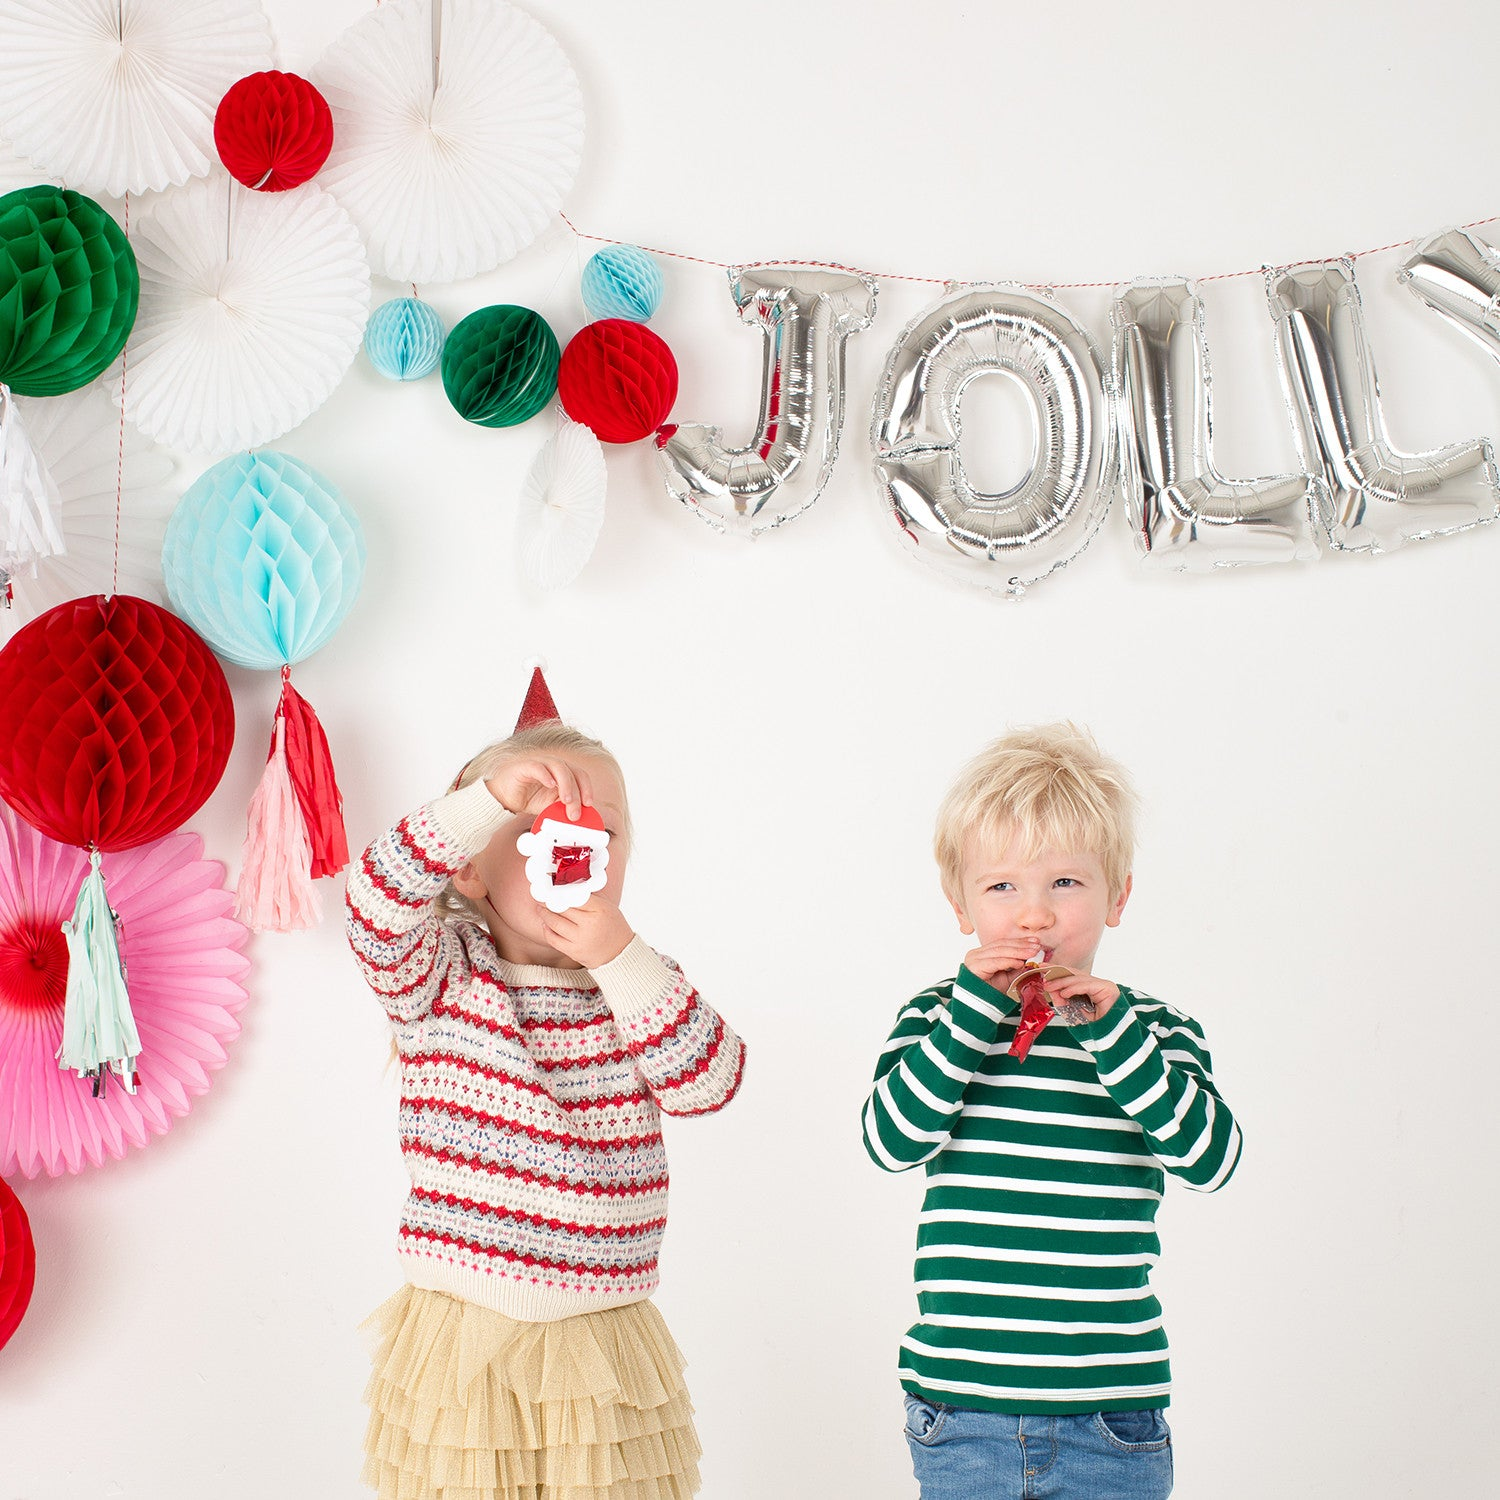 Jolly Balloon Garland Kit by Meri Meri - Little Citizens Boutique  - 3